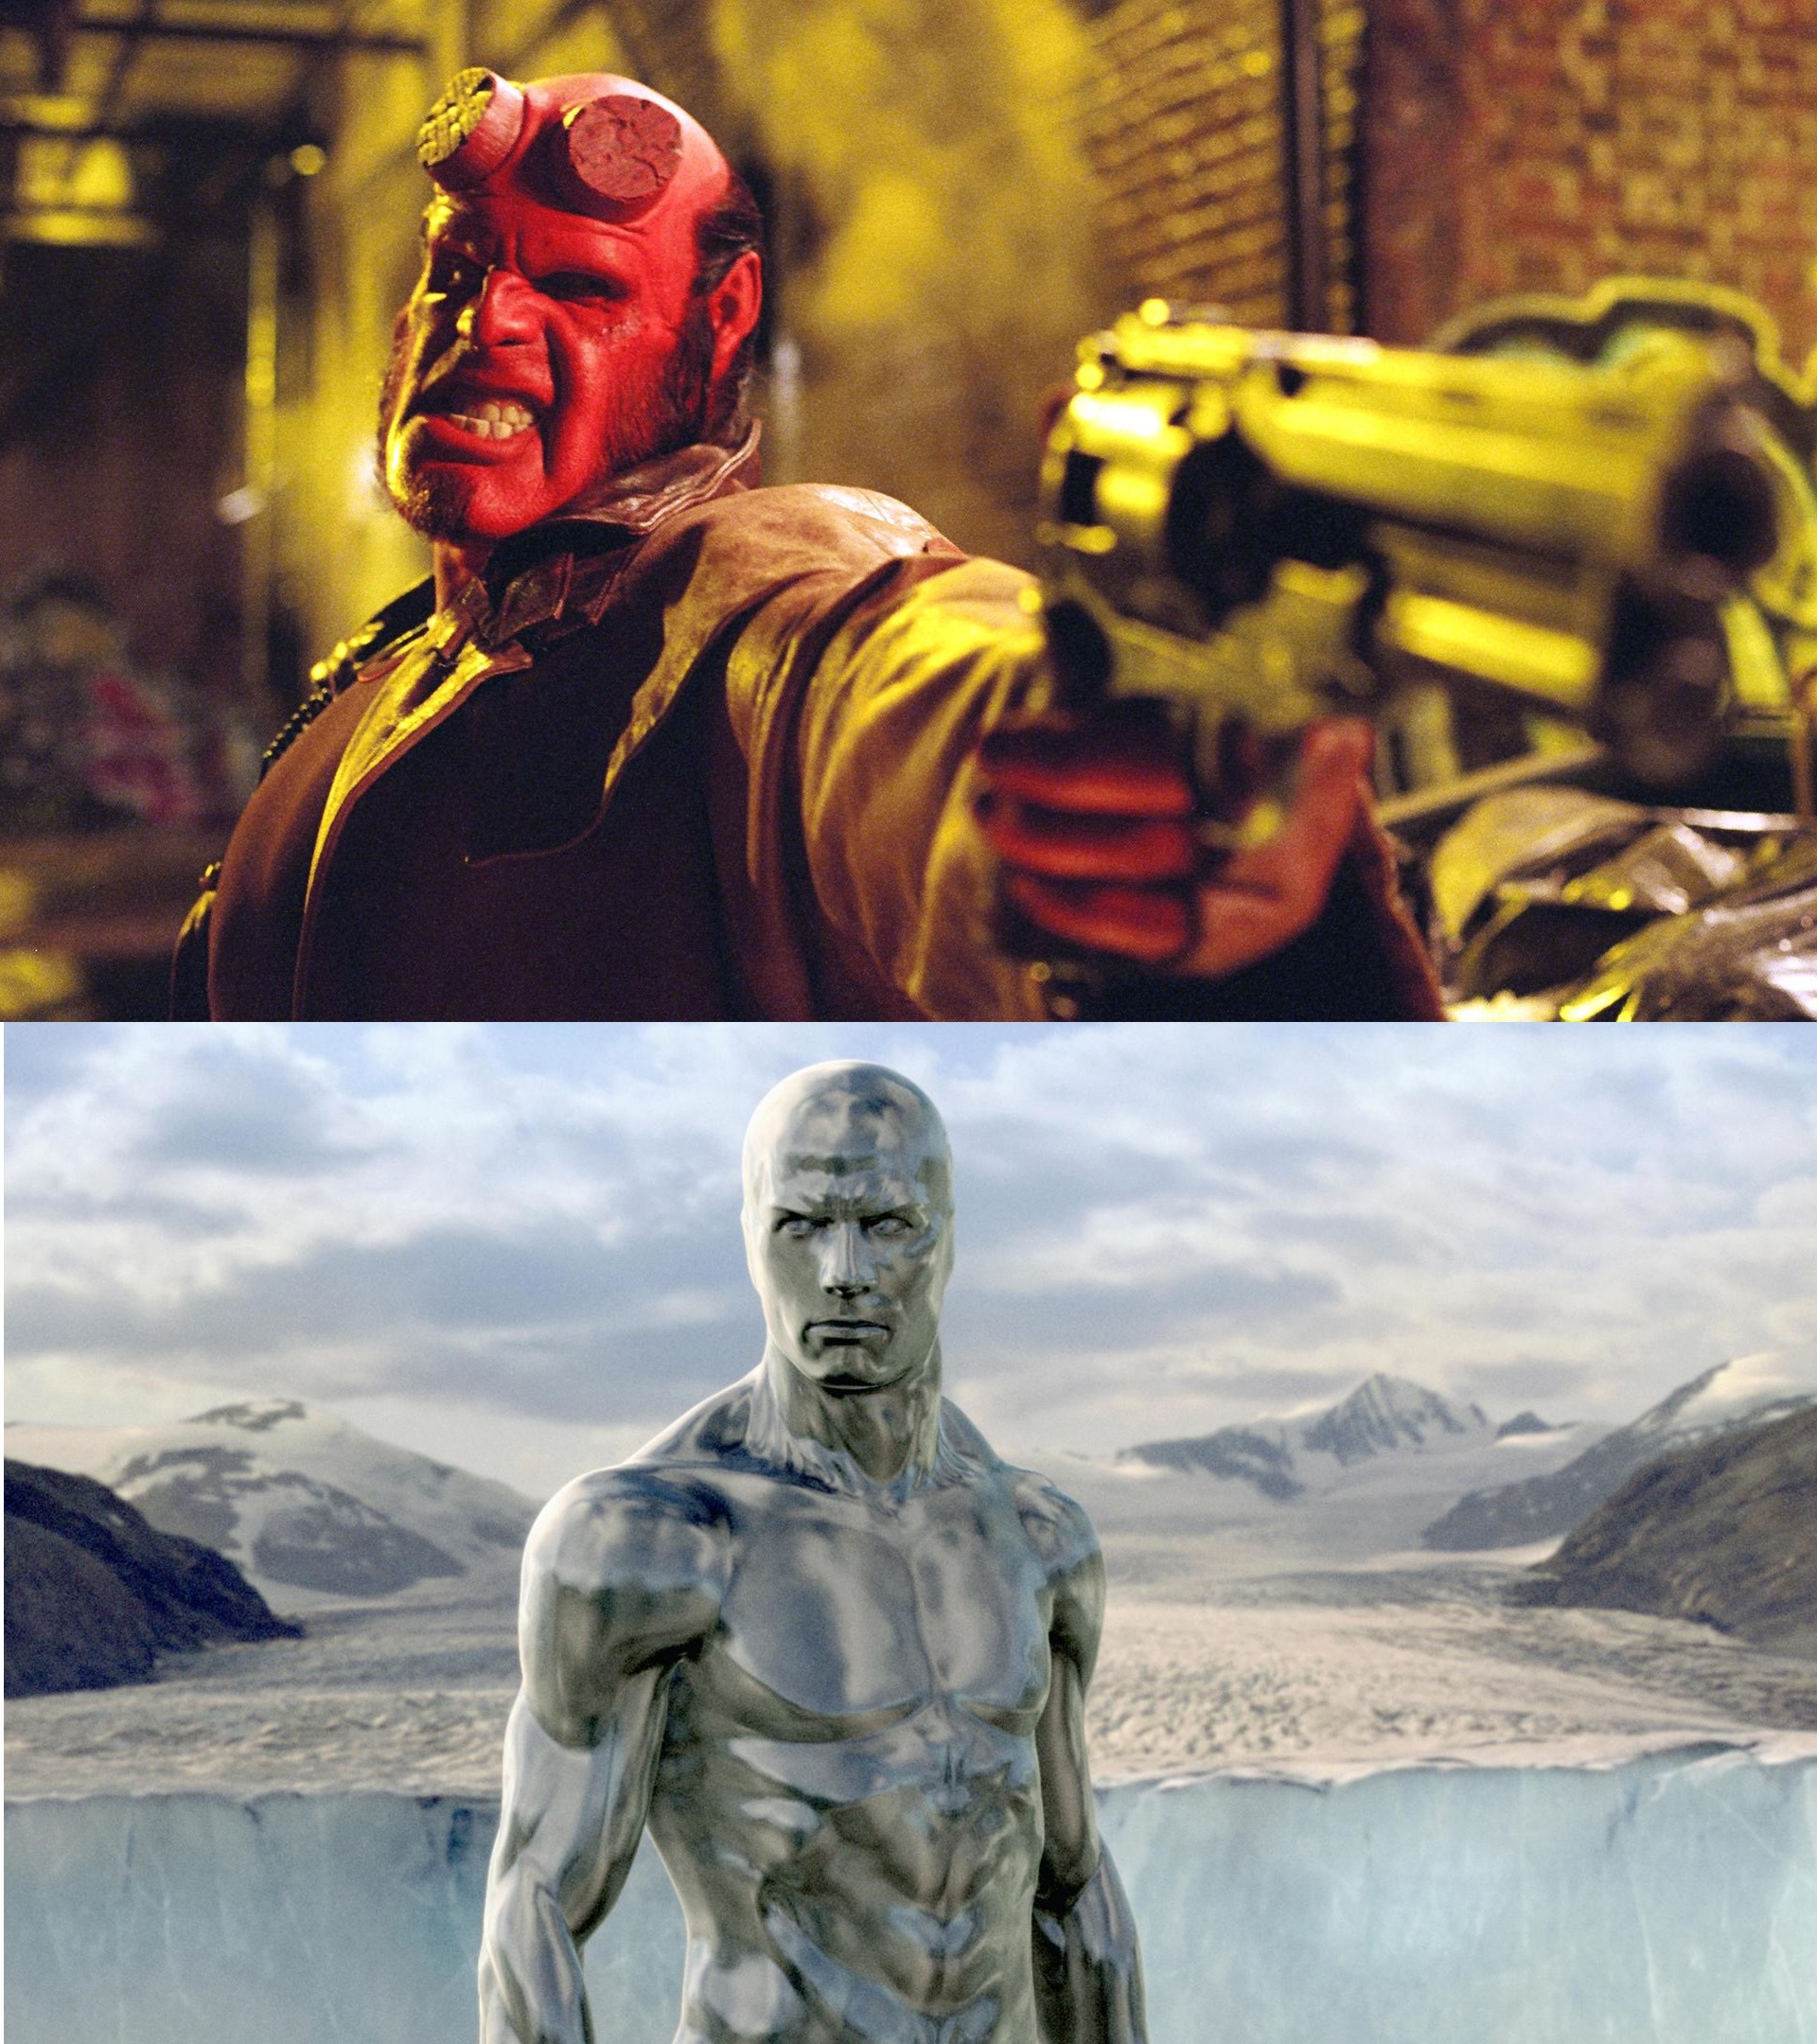 Doug Jones as Hellboy and Silver Surfer - Actors who have played more than one superhero